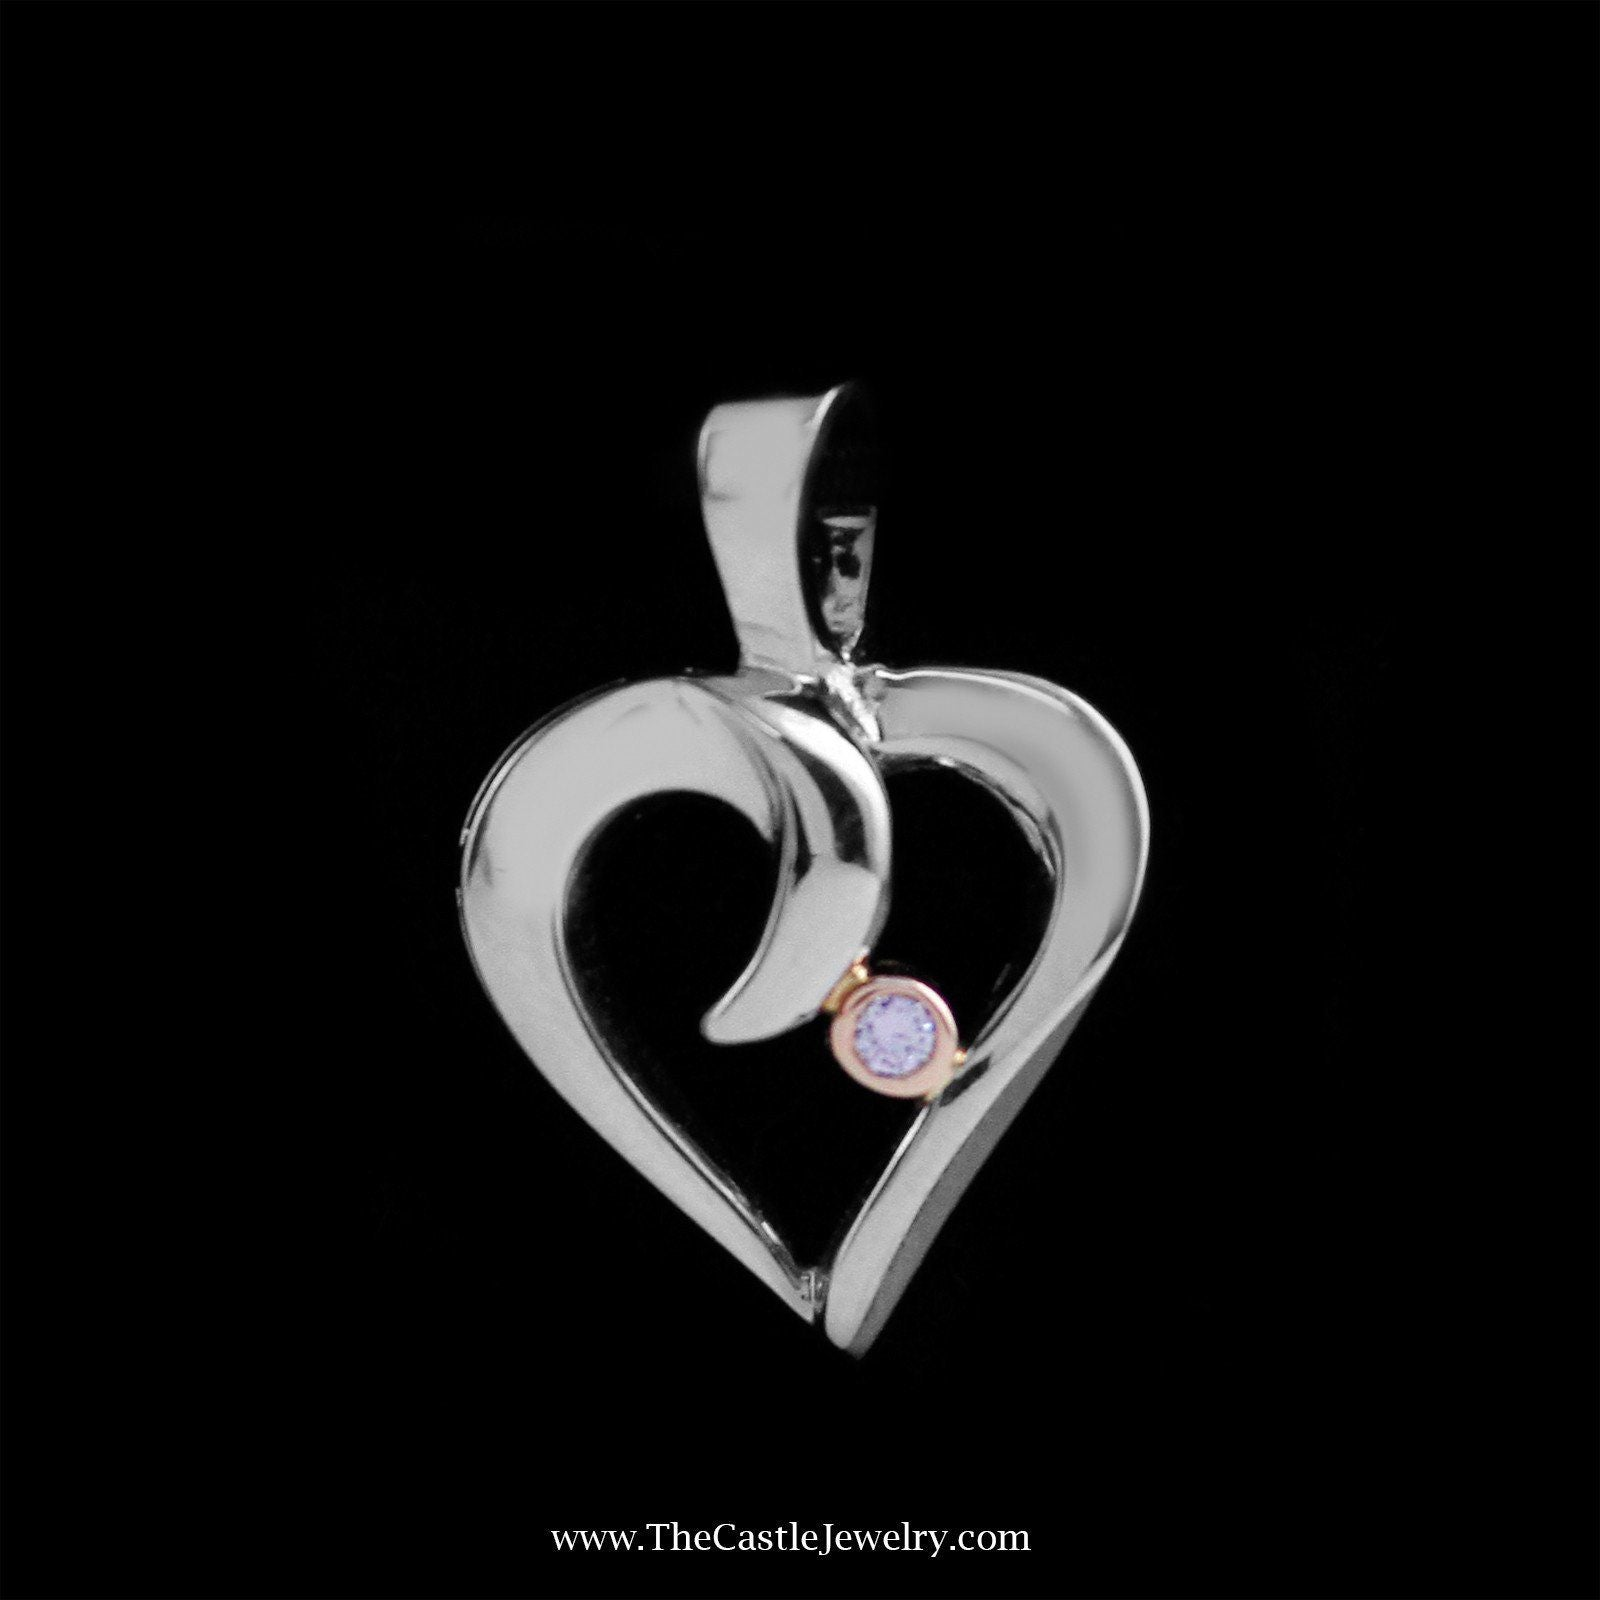 Unique Heart Pendant in White Gold with Bezel Set Diamond Accent in Rose Gold